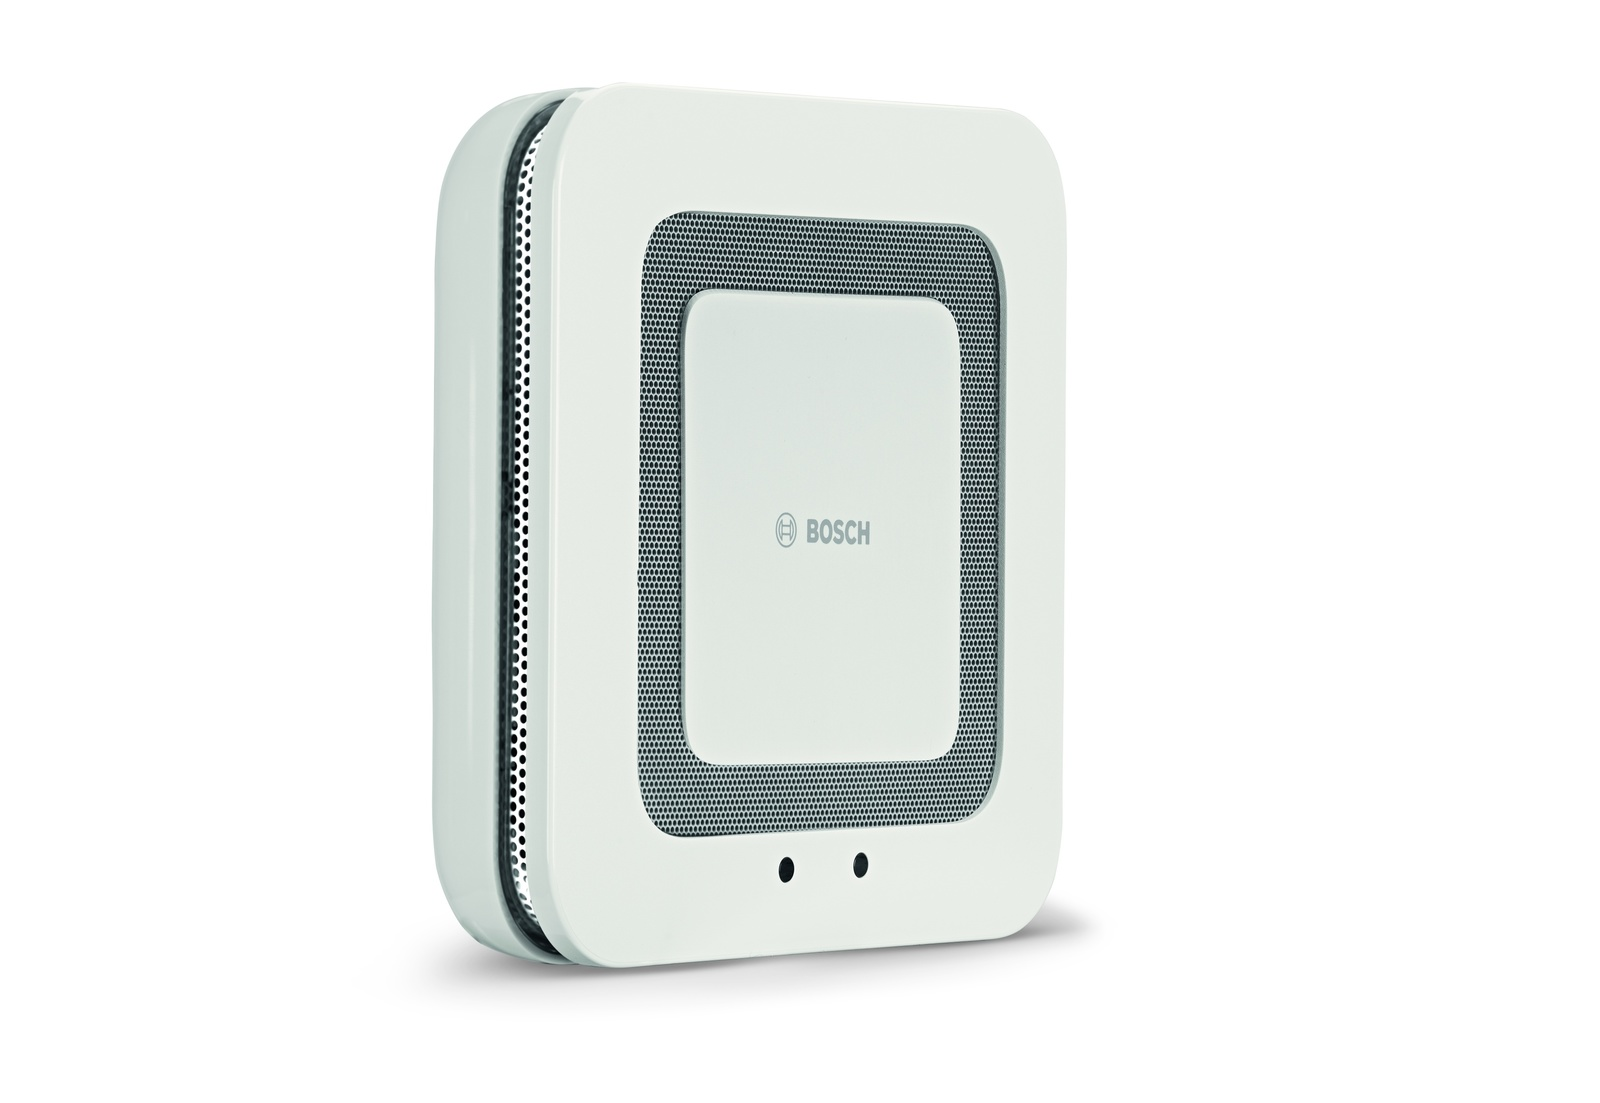 Bosch Smart Home Twinguard Smoke Alarm with Air Sensor